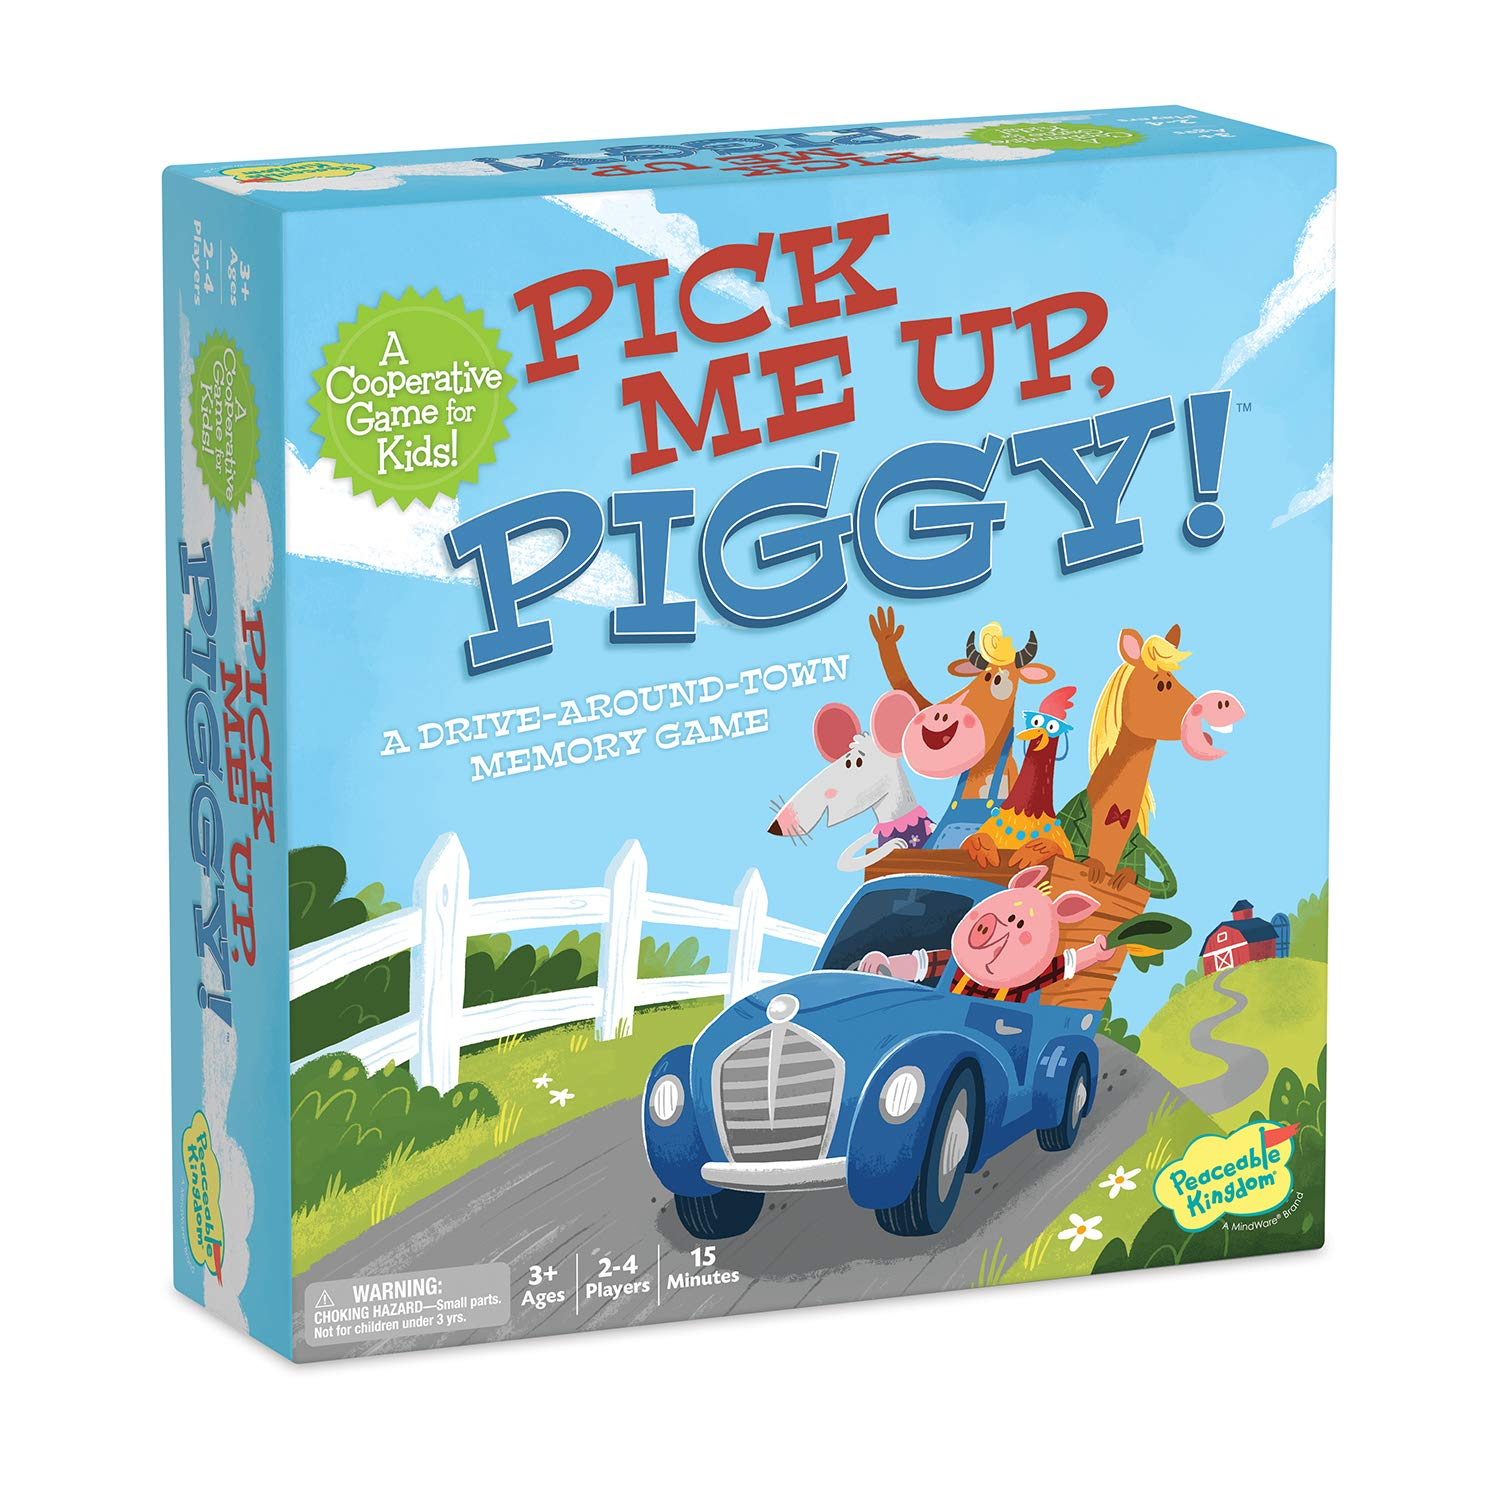 The 5 Best Cooperative Board Games for 3-year-olds - Pick Me Up Piggy.jpg